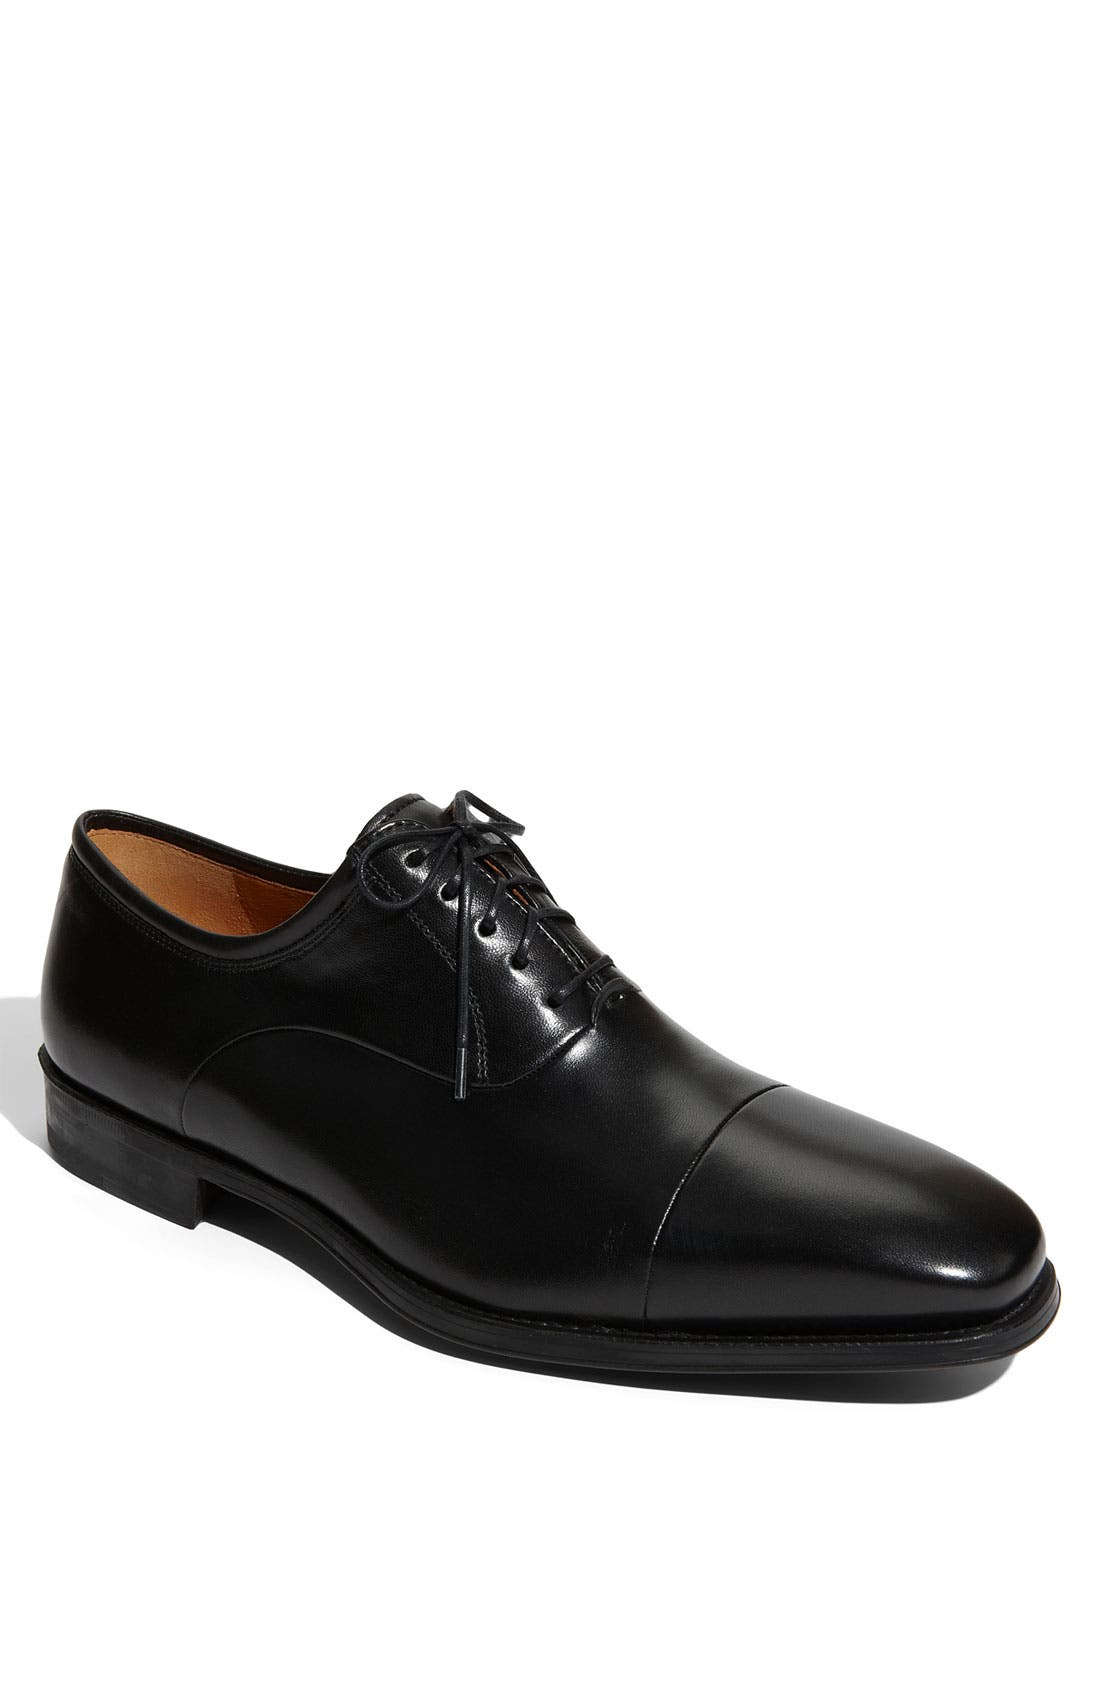 Alternate Image 1 Selected - Magnanni 'Federico' Oxford